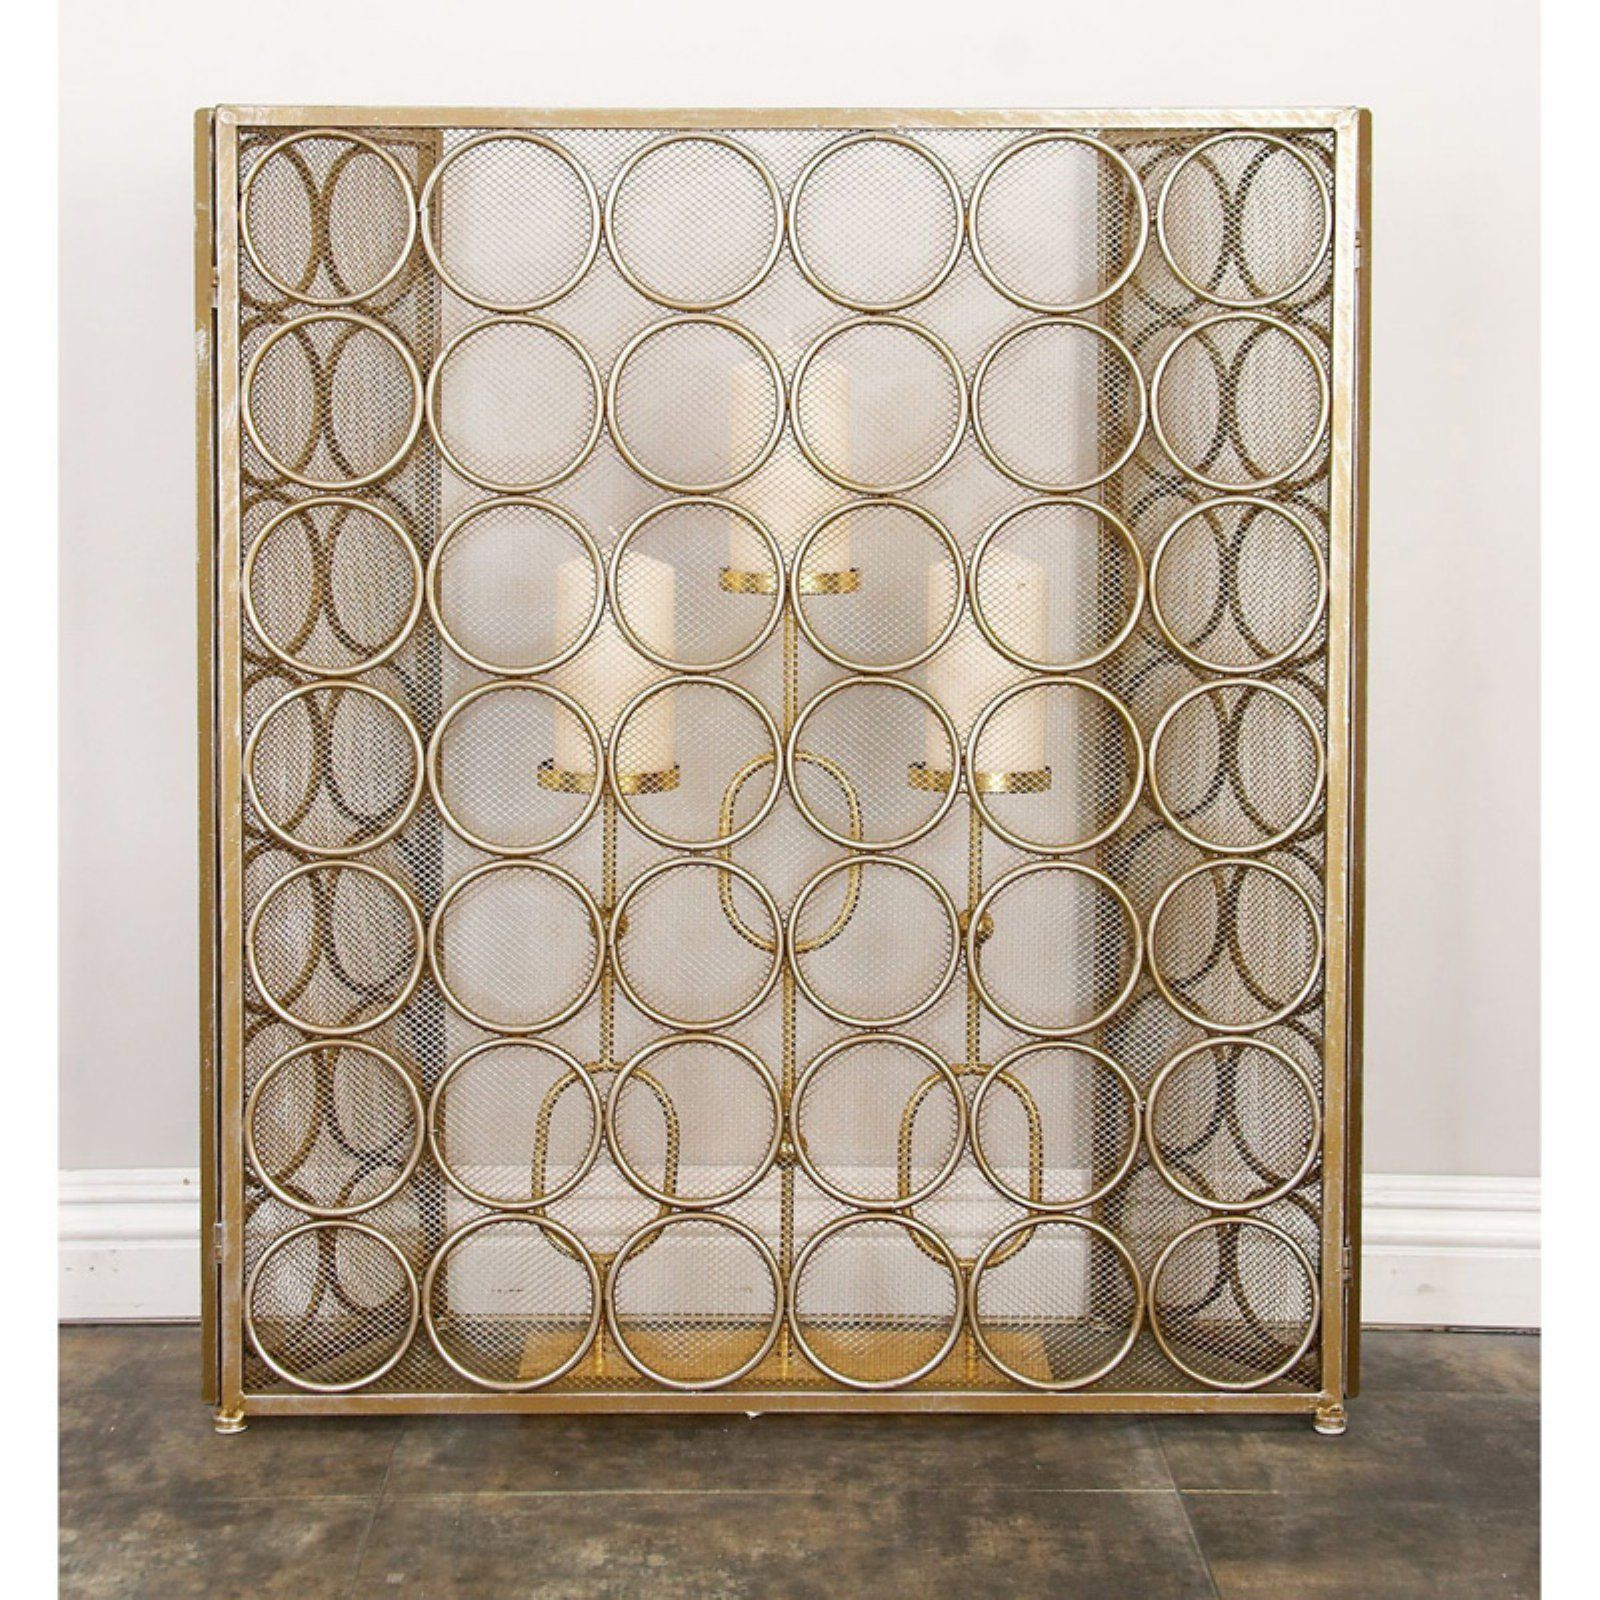 Decmode Home And Hearth Brass Tin Circle Pattern Fireplace Screen